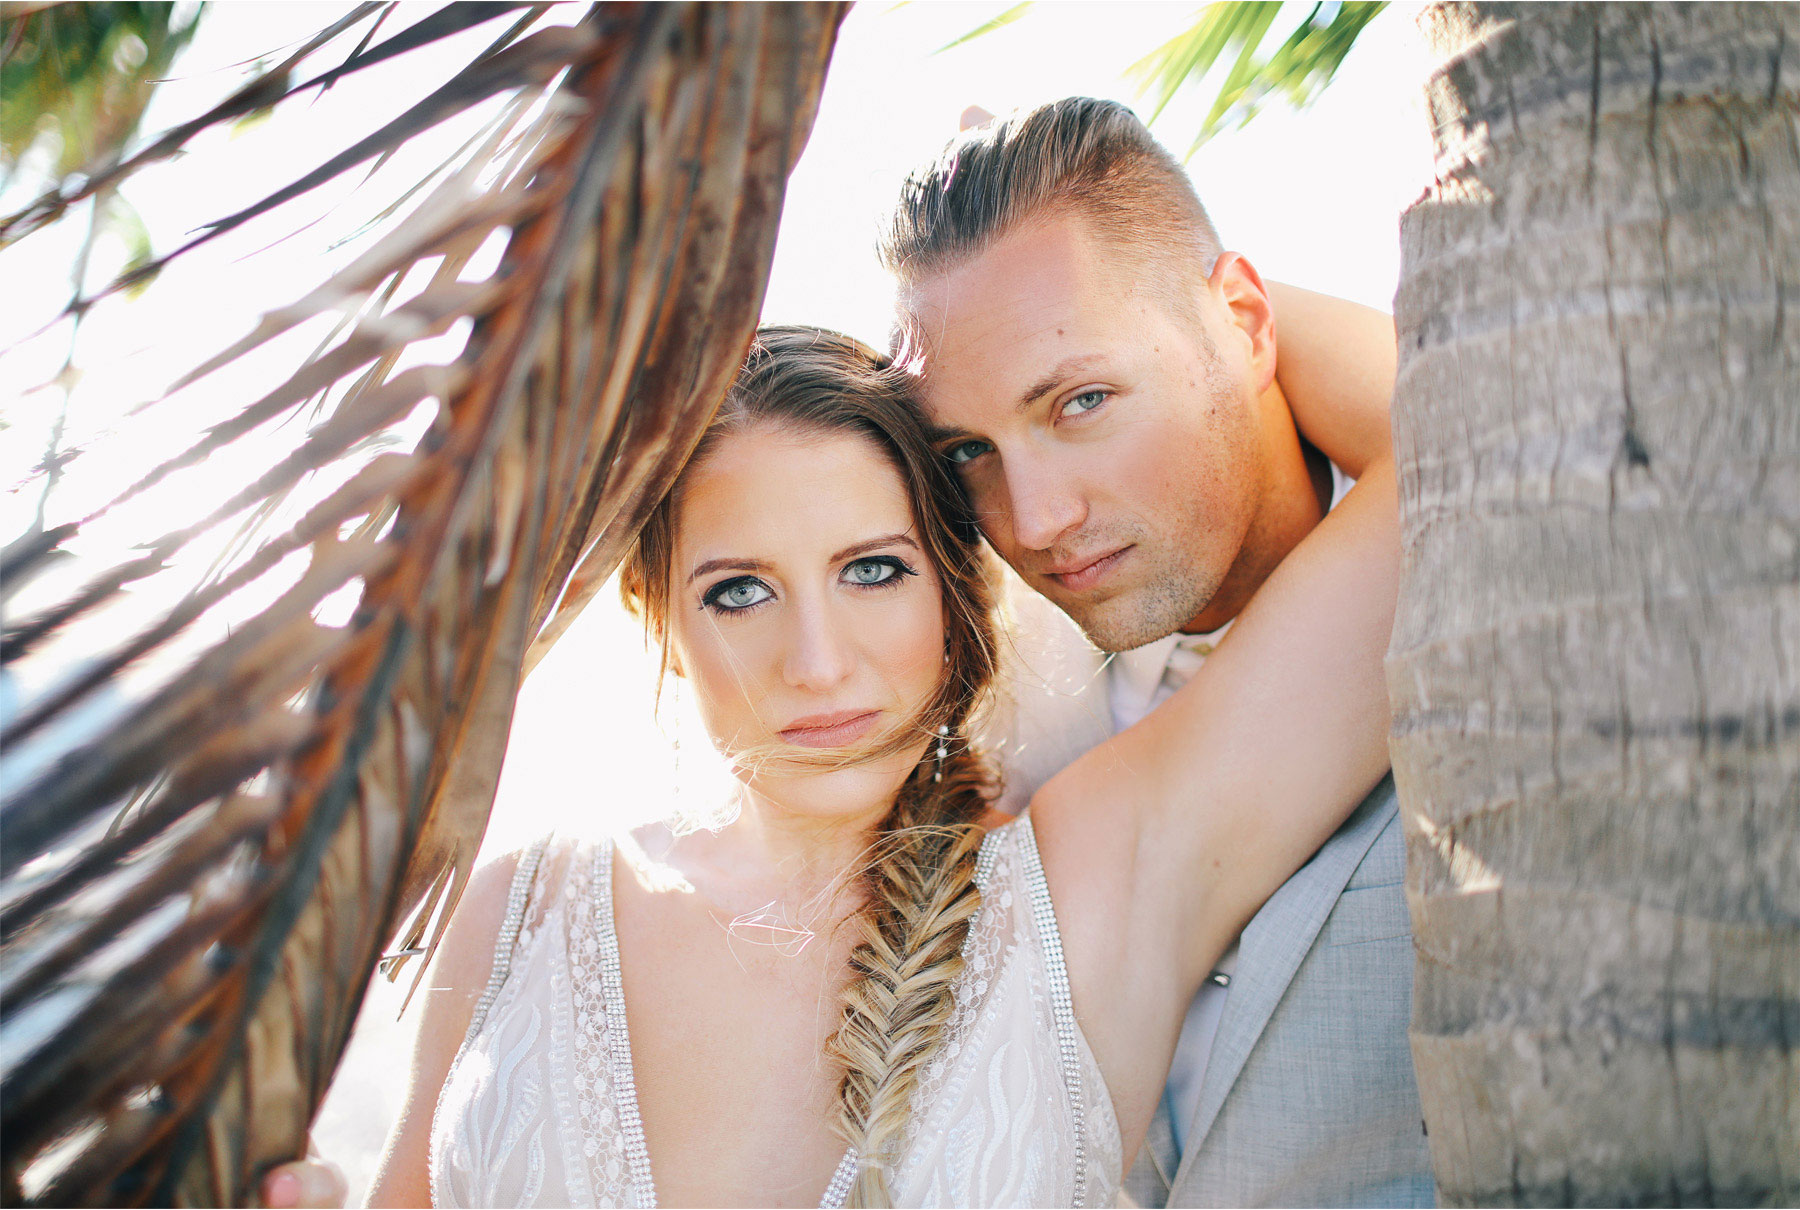 23-Key-Largo-Florida-Keys-Wedding-Photographer-by-Andrew-Vick-Photography-Playa-Largo-Resort-and-Spa-Hotel-Destination-Winter-Wear-It-Again-Bride-Groom-Palm-Trees-Embrace-Carrie-and-Brian.jpg